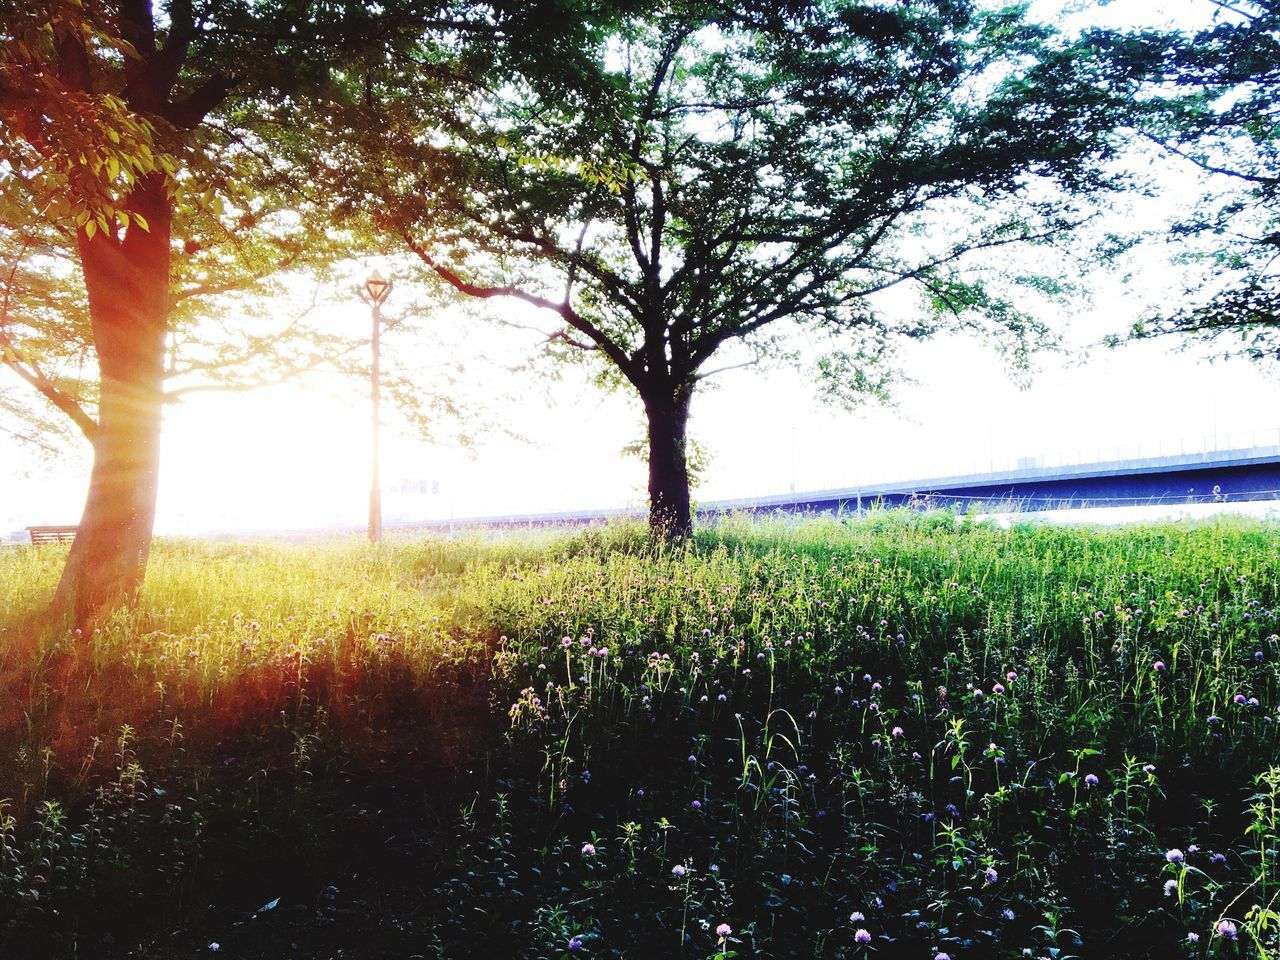 Sunset Tree Nature Growth Field Beauty In Nature Tranquility Tranquil Scene Scenics Landscape Agriculture Day Grass No People Outdoors Sunlight Rural Scene Green Color Plant Sky Branch